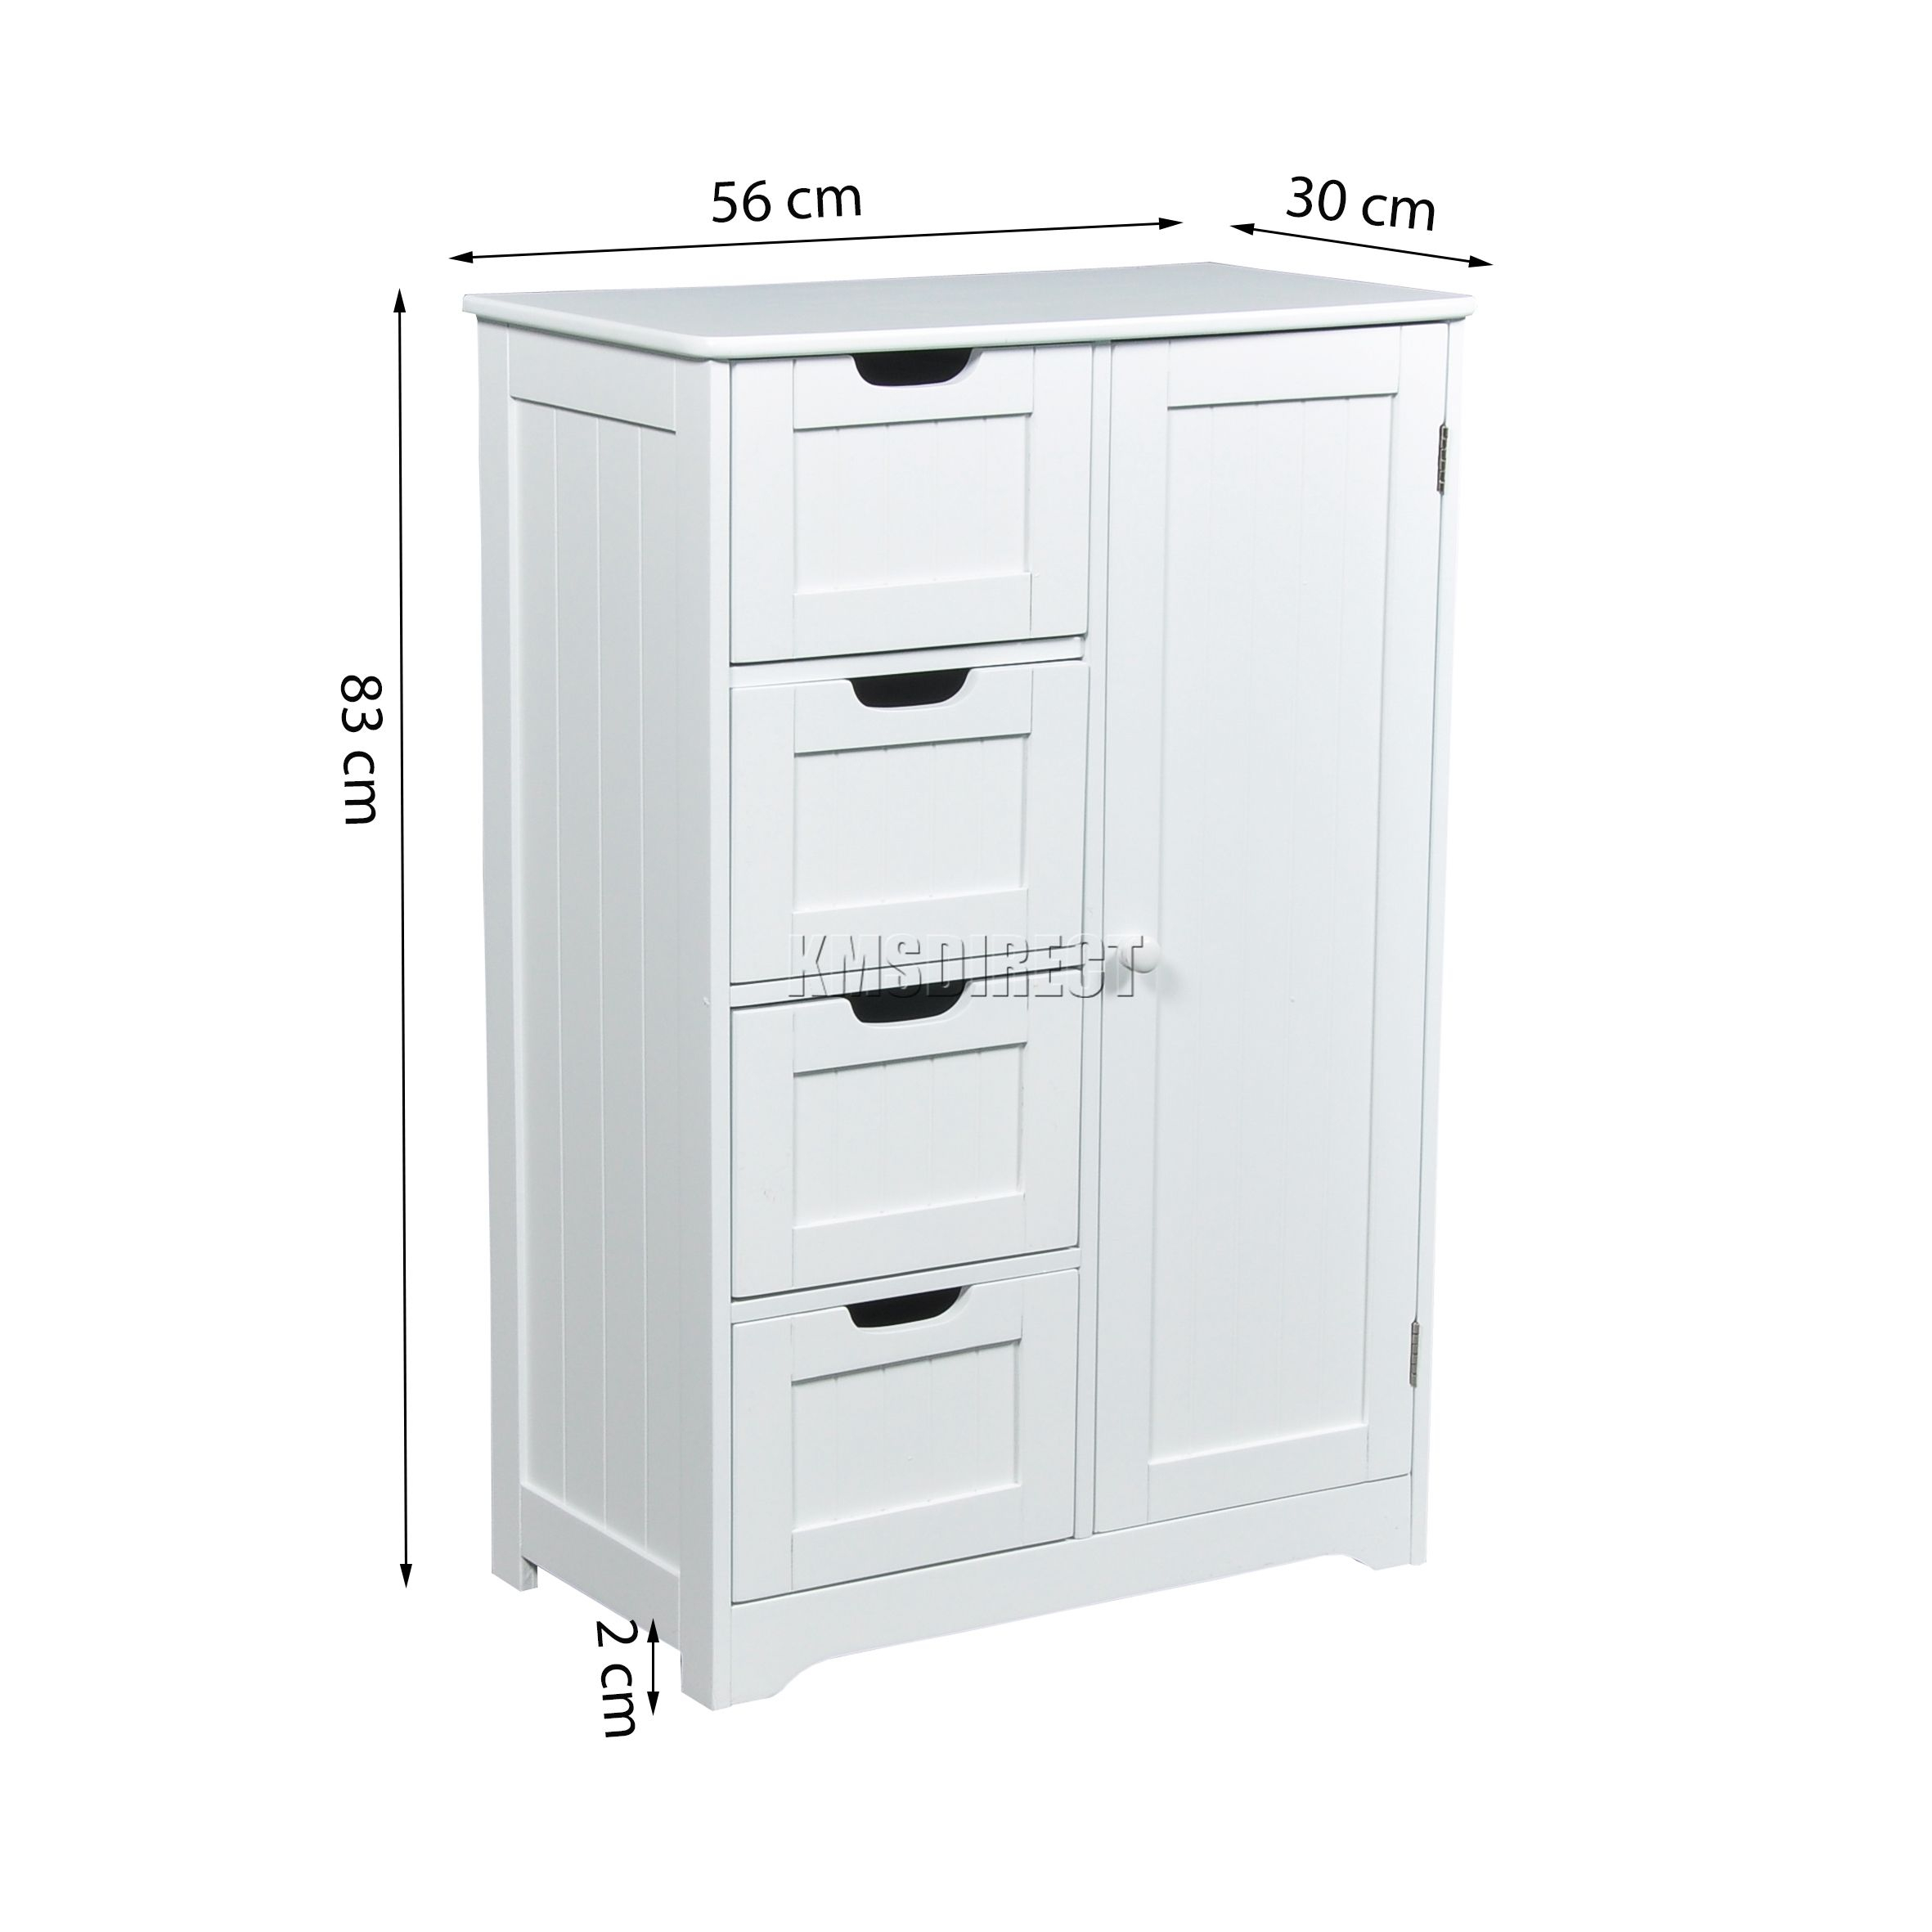 Details About Westwood Bathroom Storage Cabinet Wooden 4 for measurements 2362 X 2362